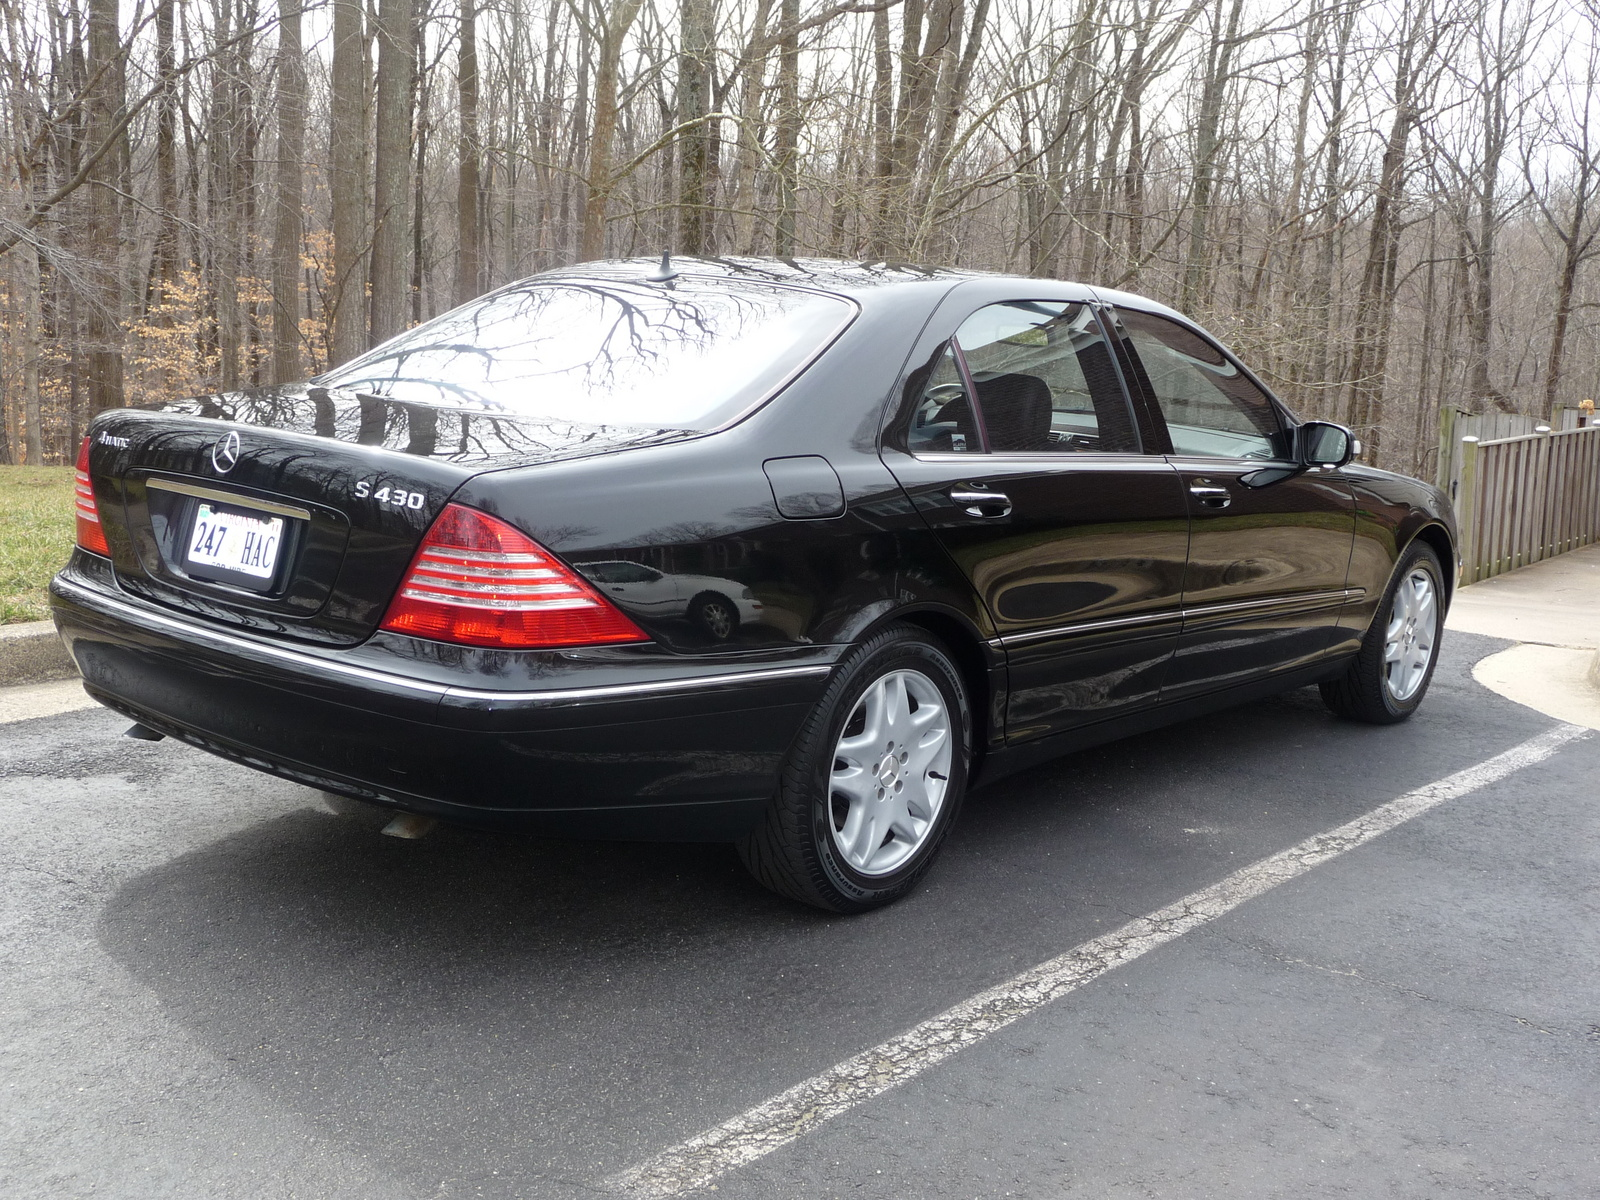 2003 mercedes benz s class pictures cargurus for 2003 mercedes benz e320 specs